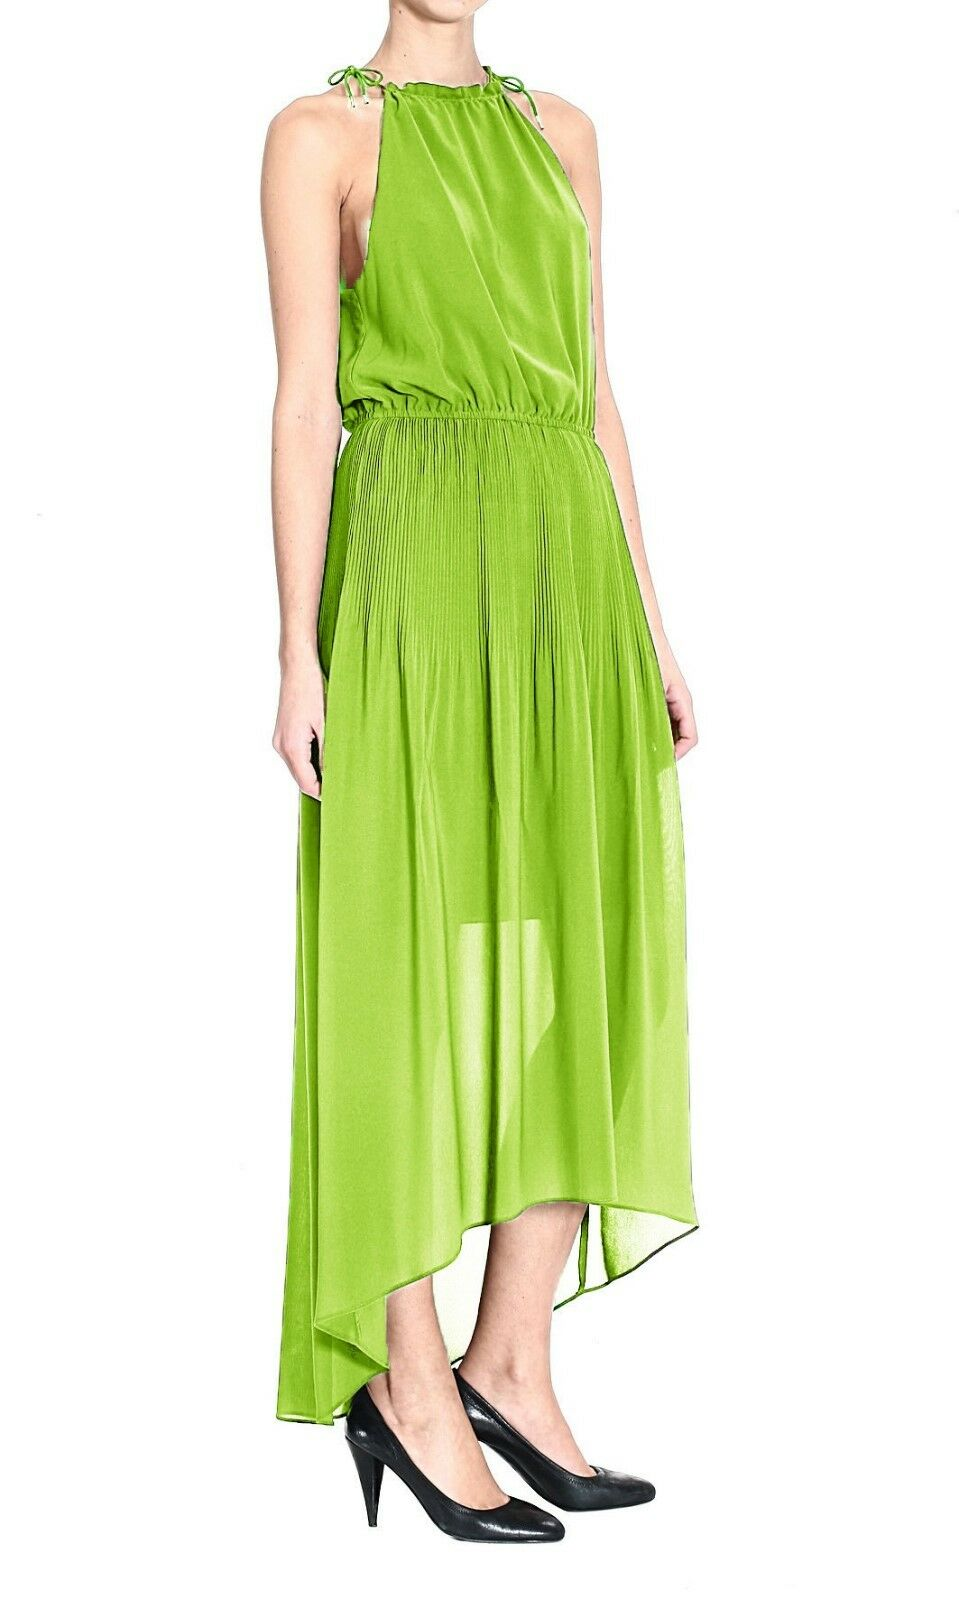 Beaded petite lime green evening dress, christine yoing blowjob